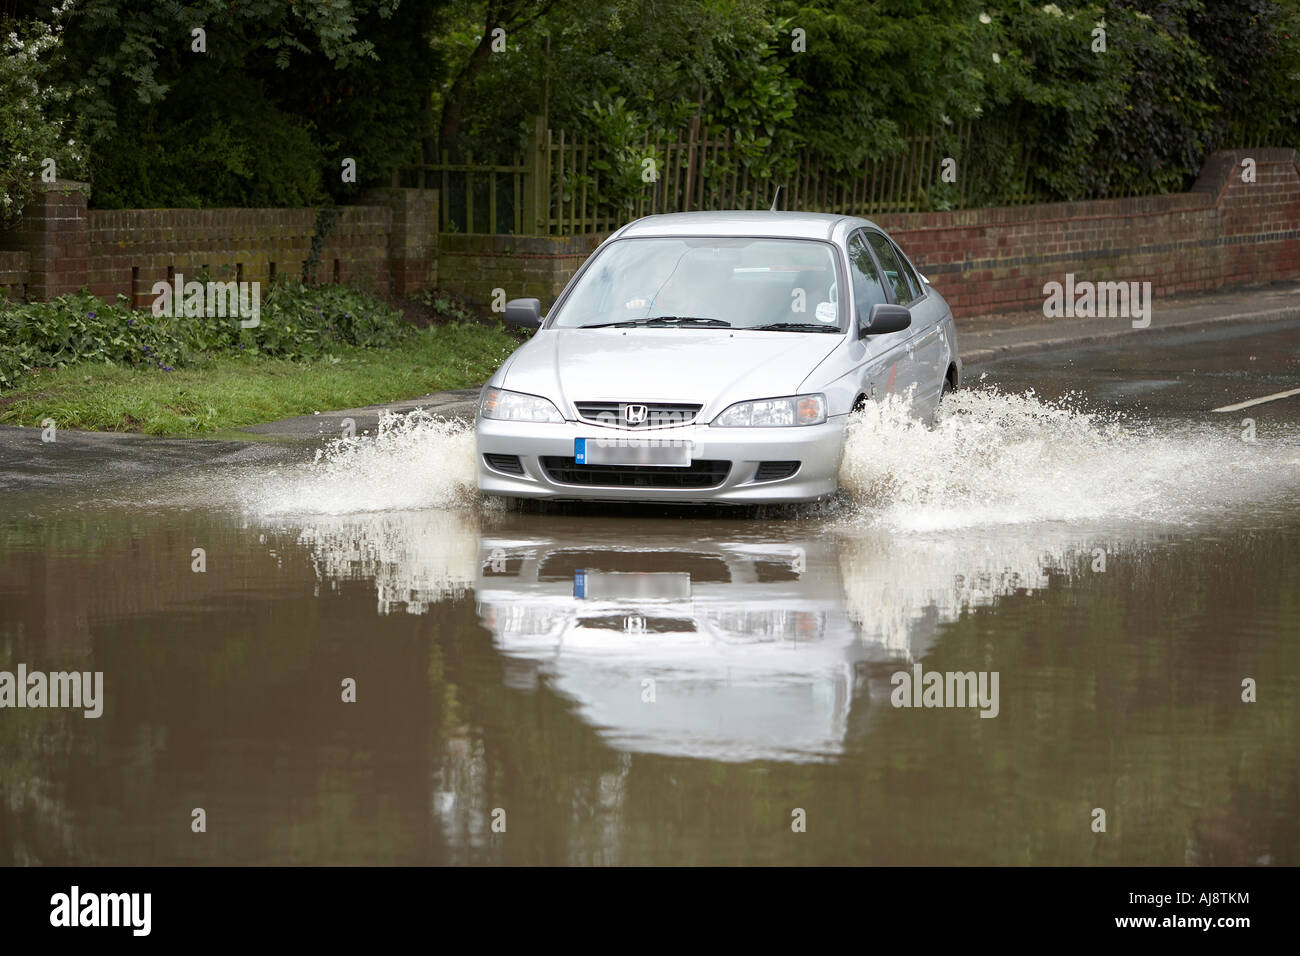 Car diving through flood water in Leconfield East Yorkshire UK June 2007 - Stock Image